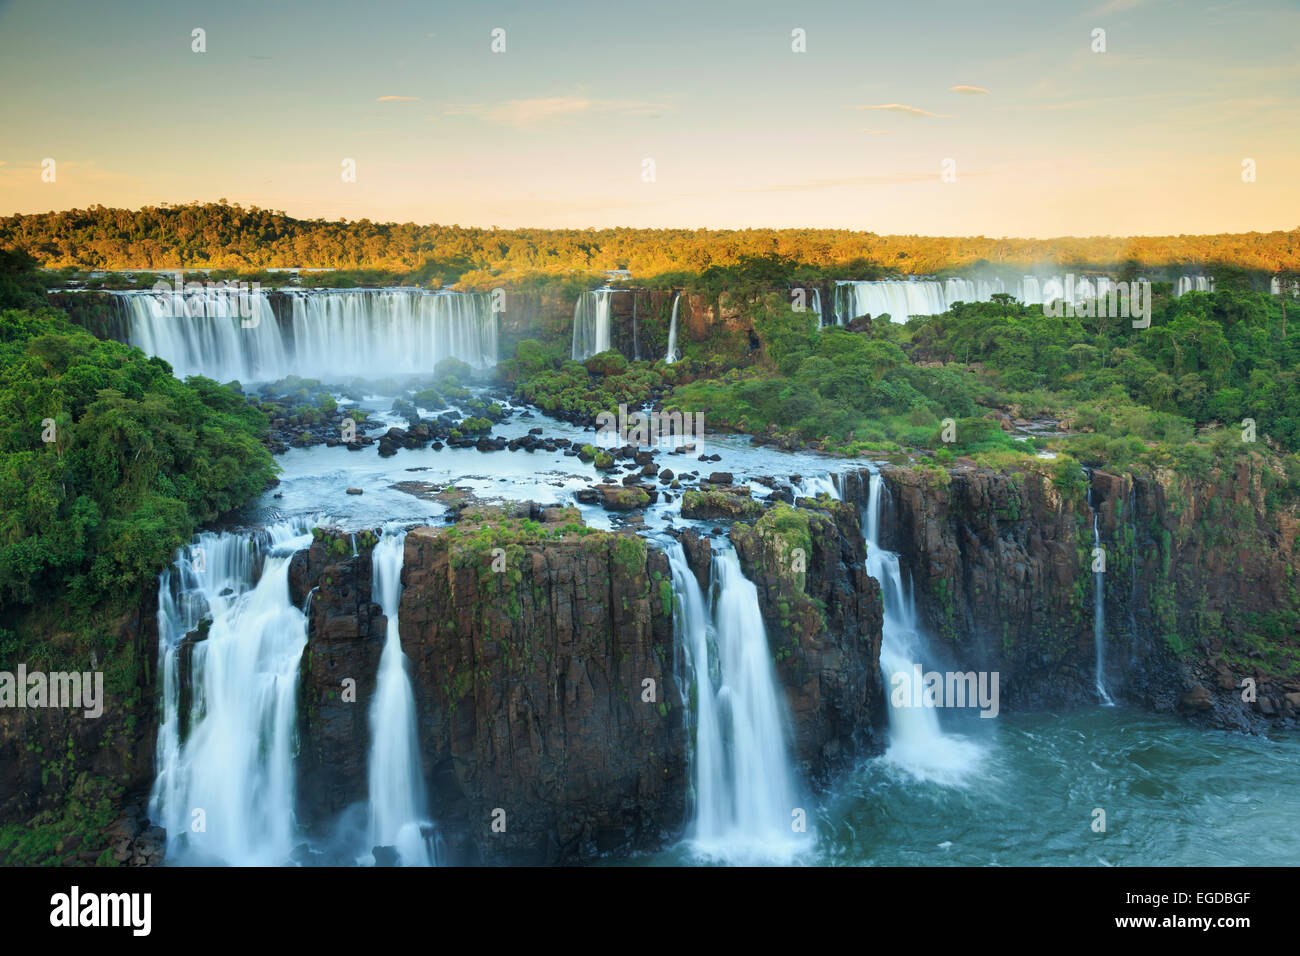 Brasilien, Parana, Iguassu Falls National Park (Cataratas Do Iguaçu) (der UNESCO) Stockbild